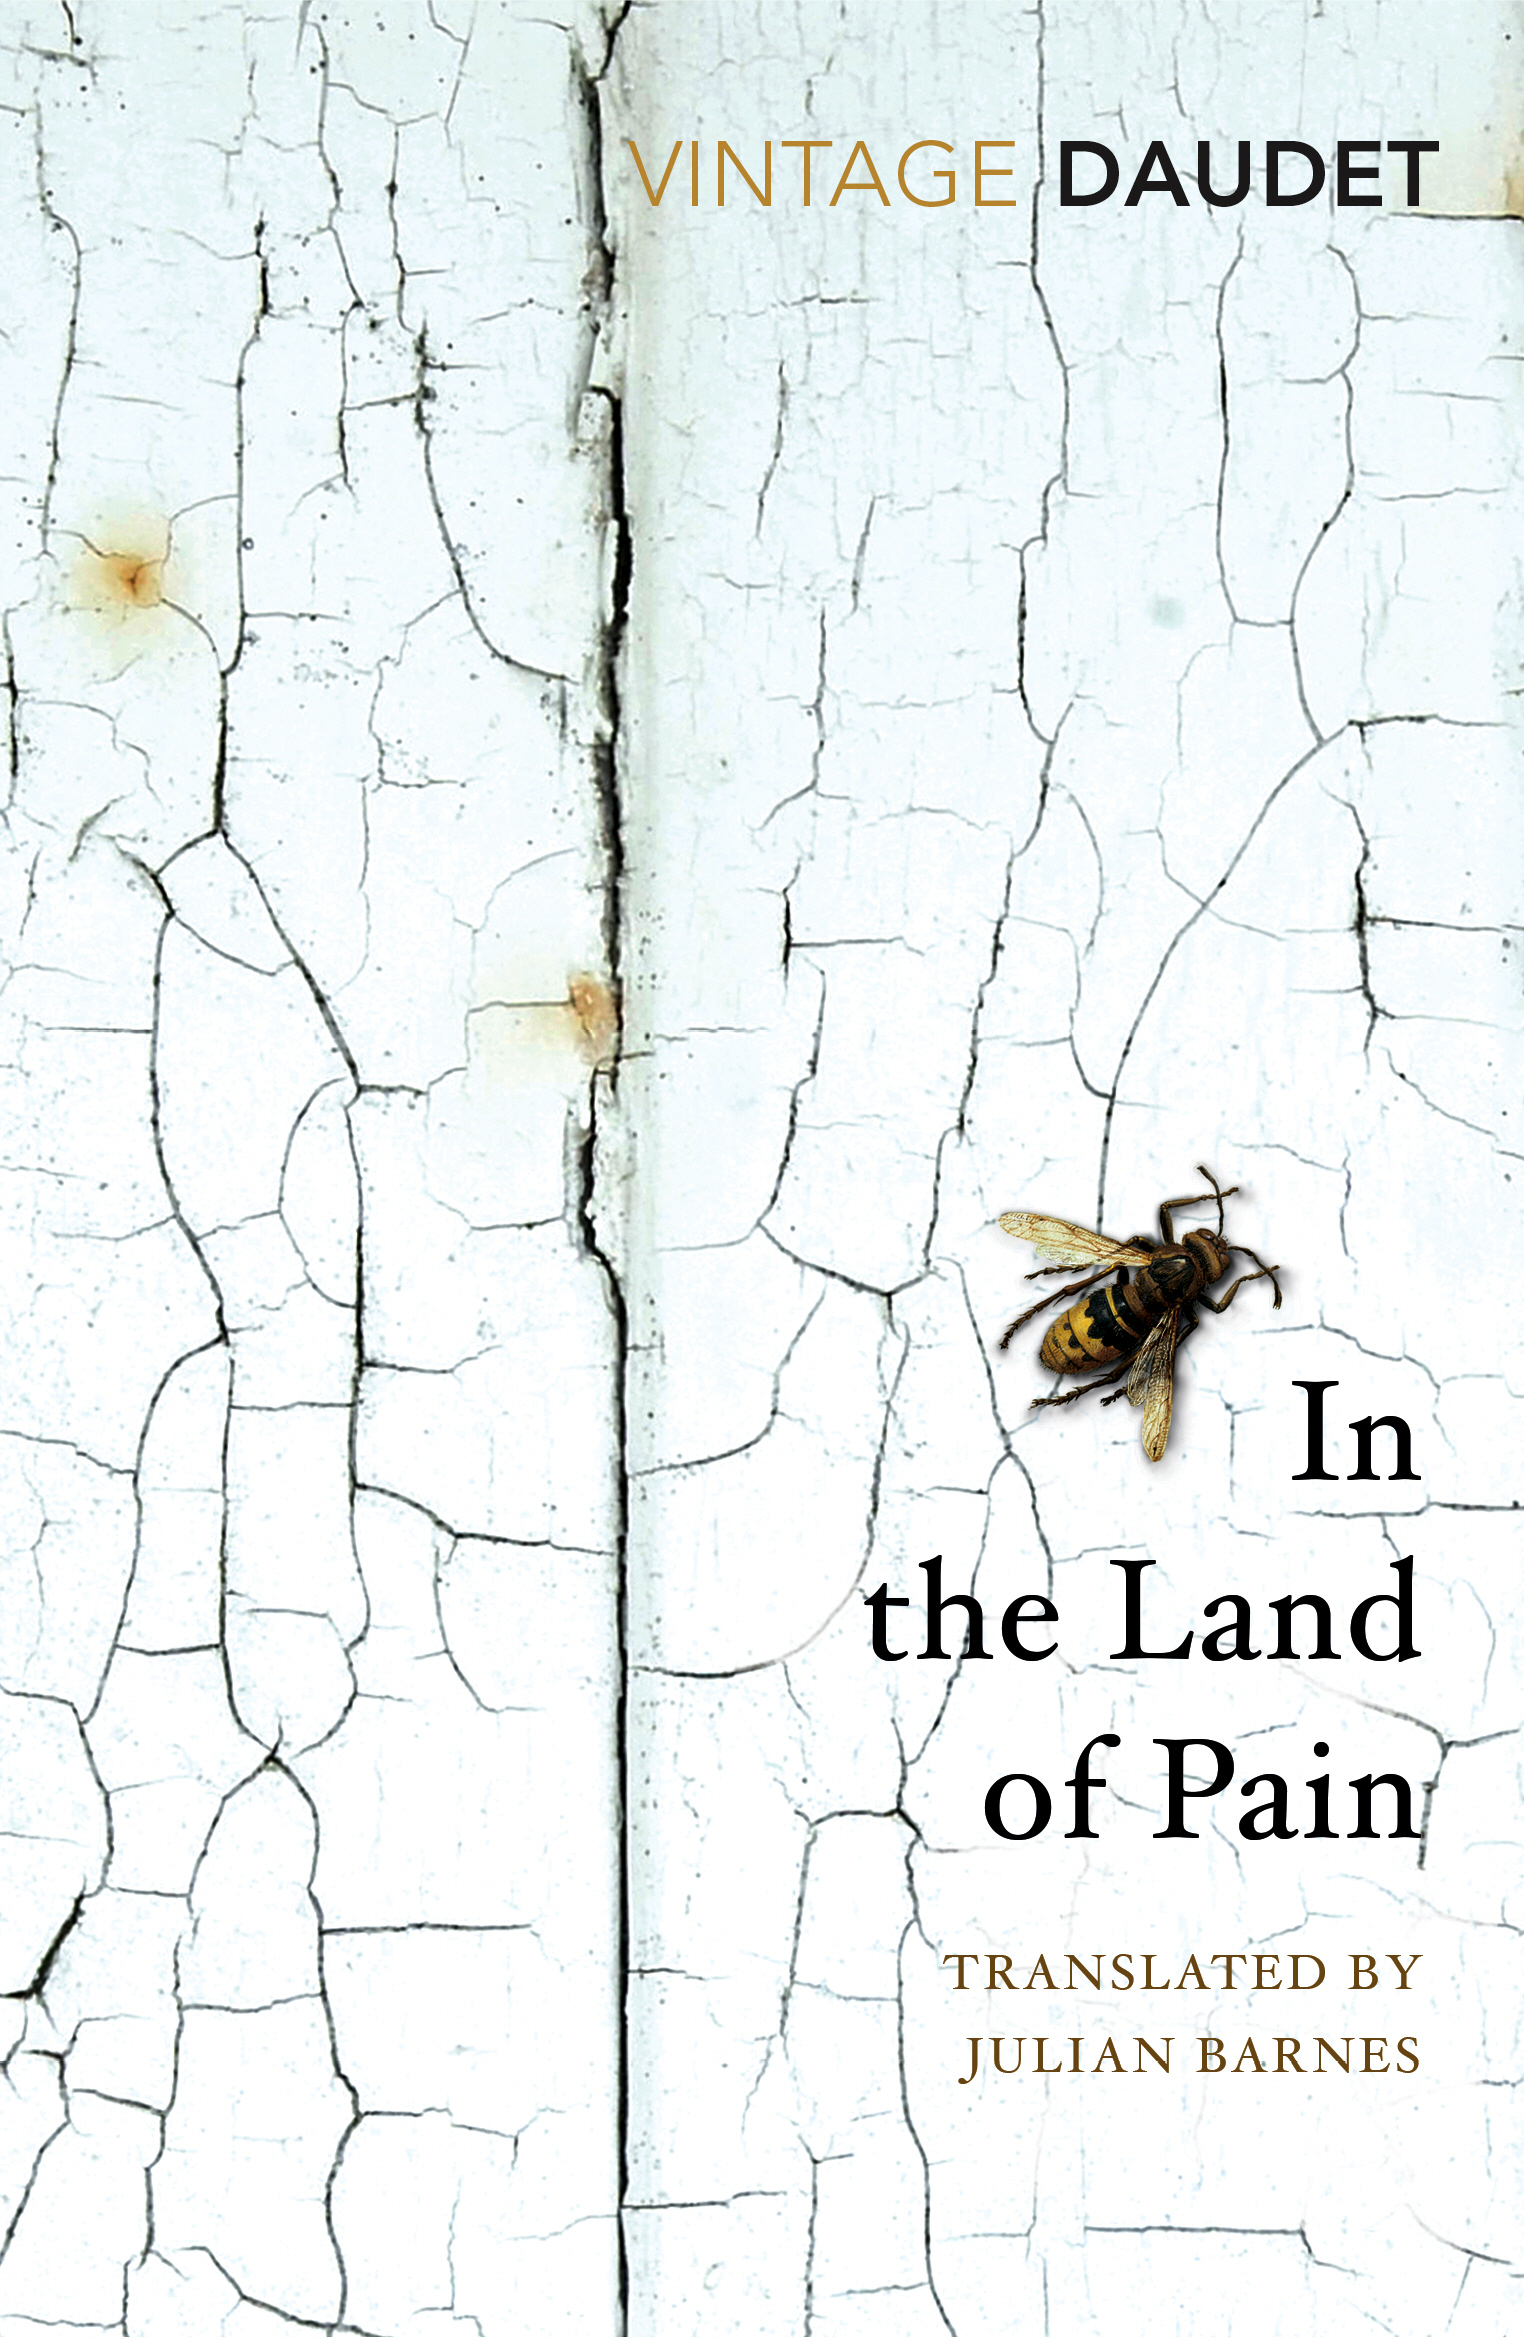 In the Land of Pain